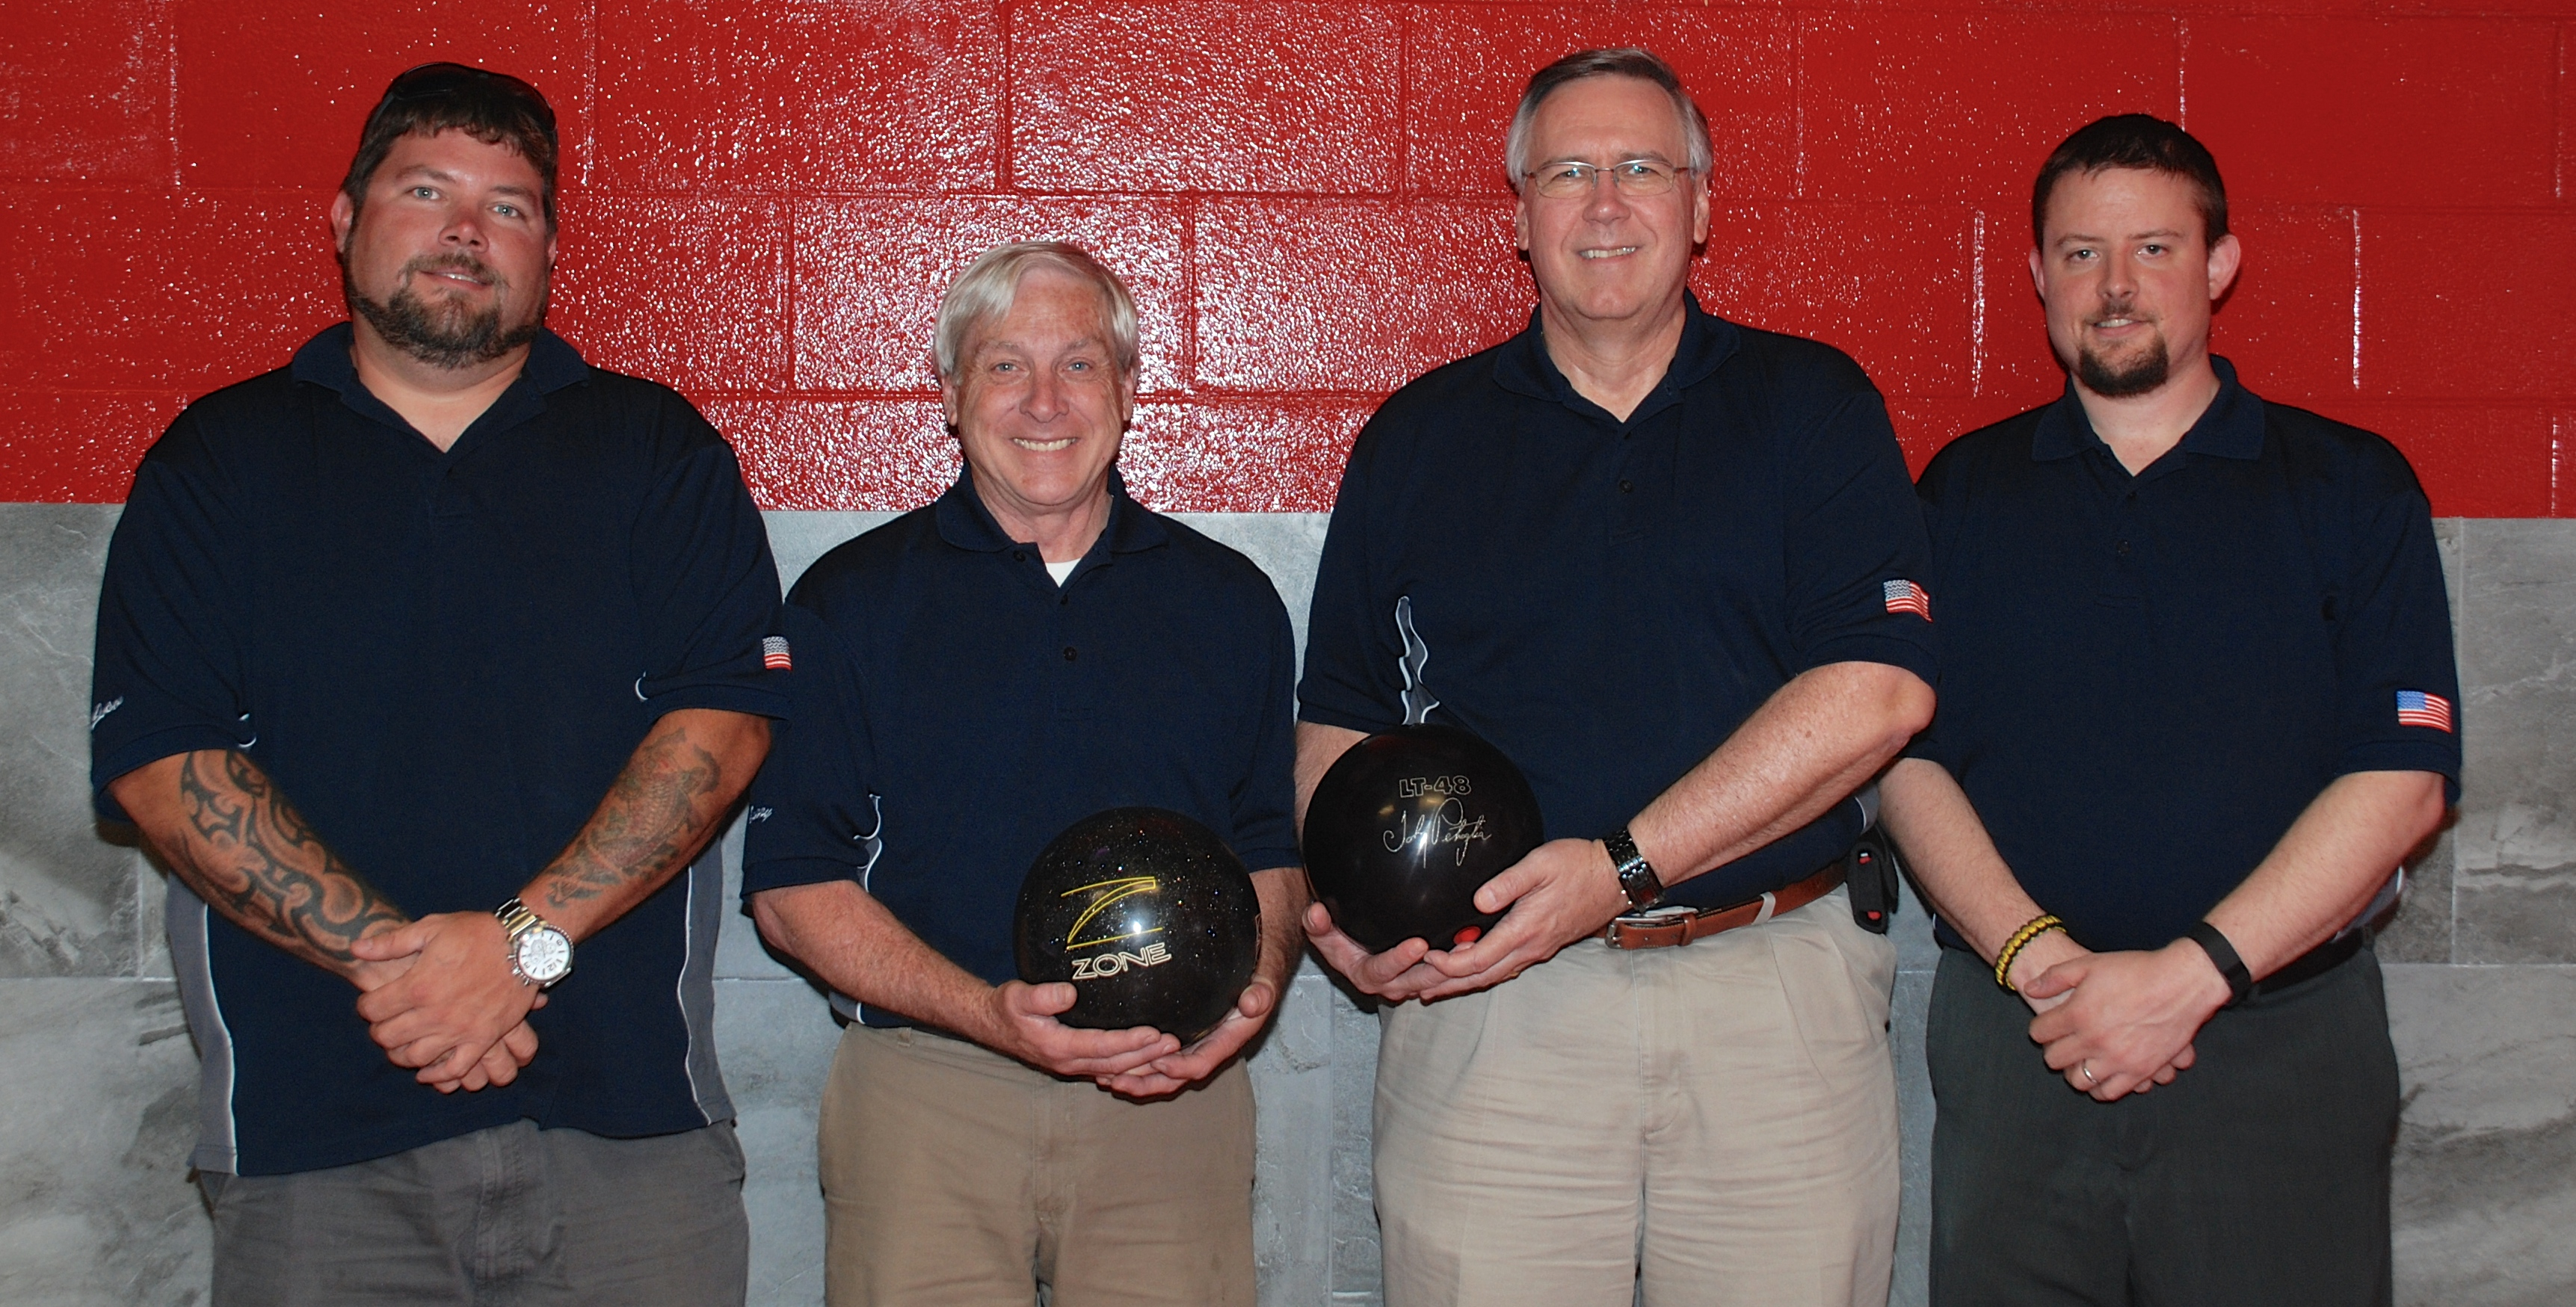 league bowling team 4 men